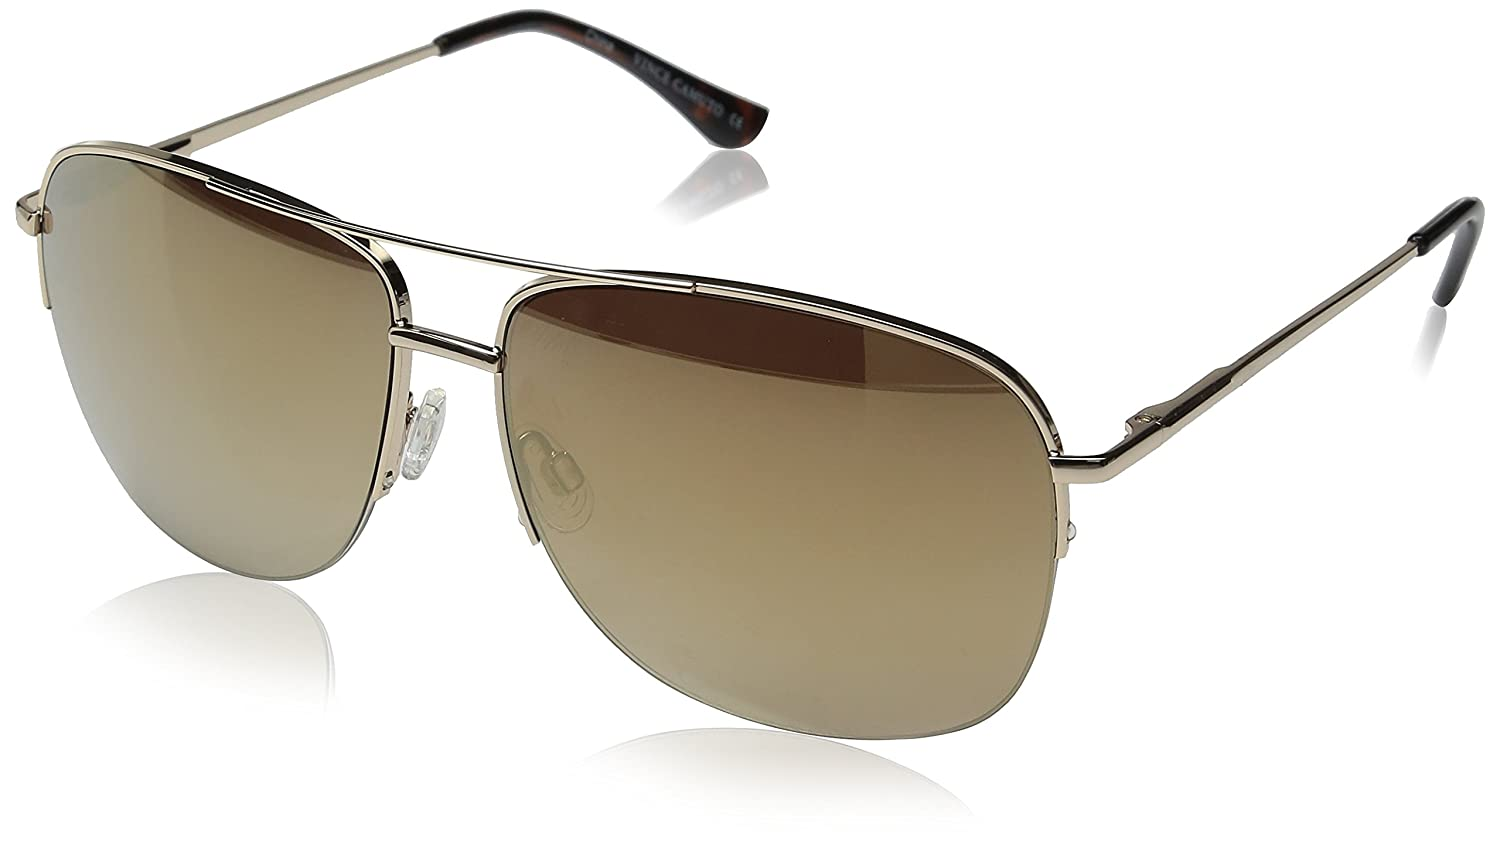 ca14defcec Amazon.com  Vince Camuto Women s Vc709 Gld Aviator Sunglasses